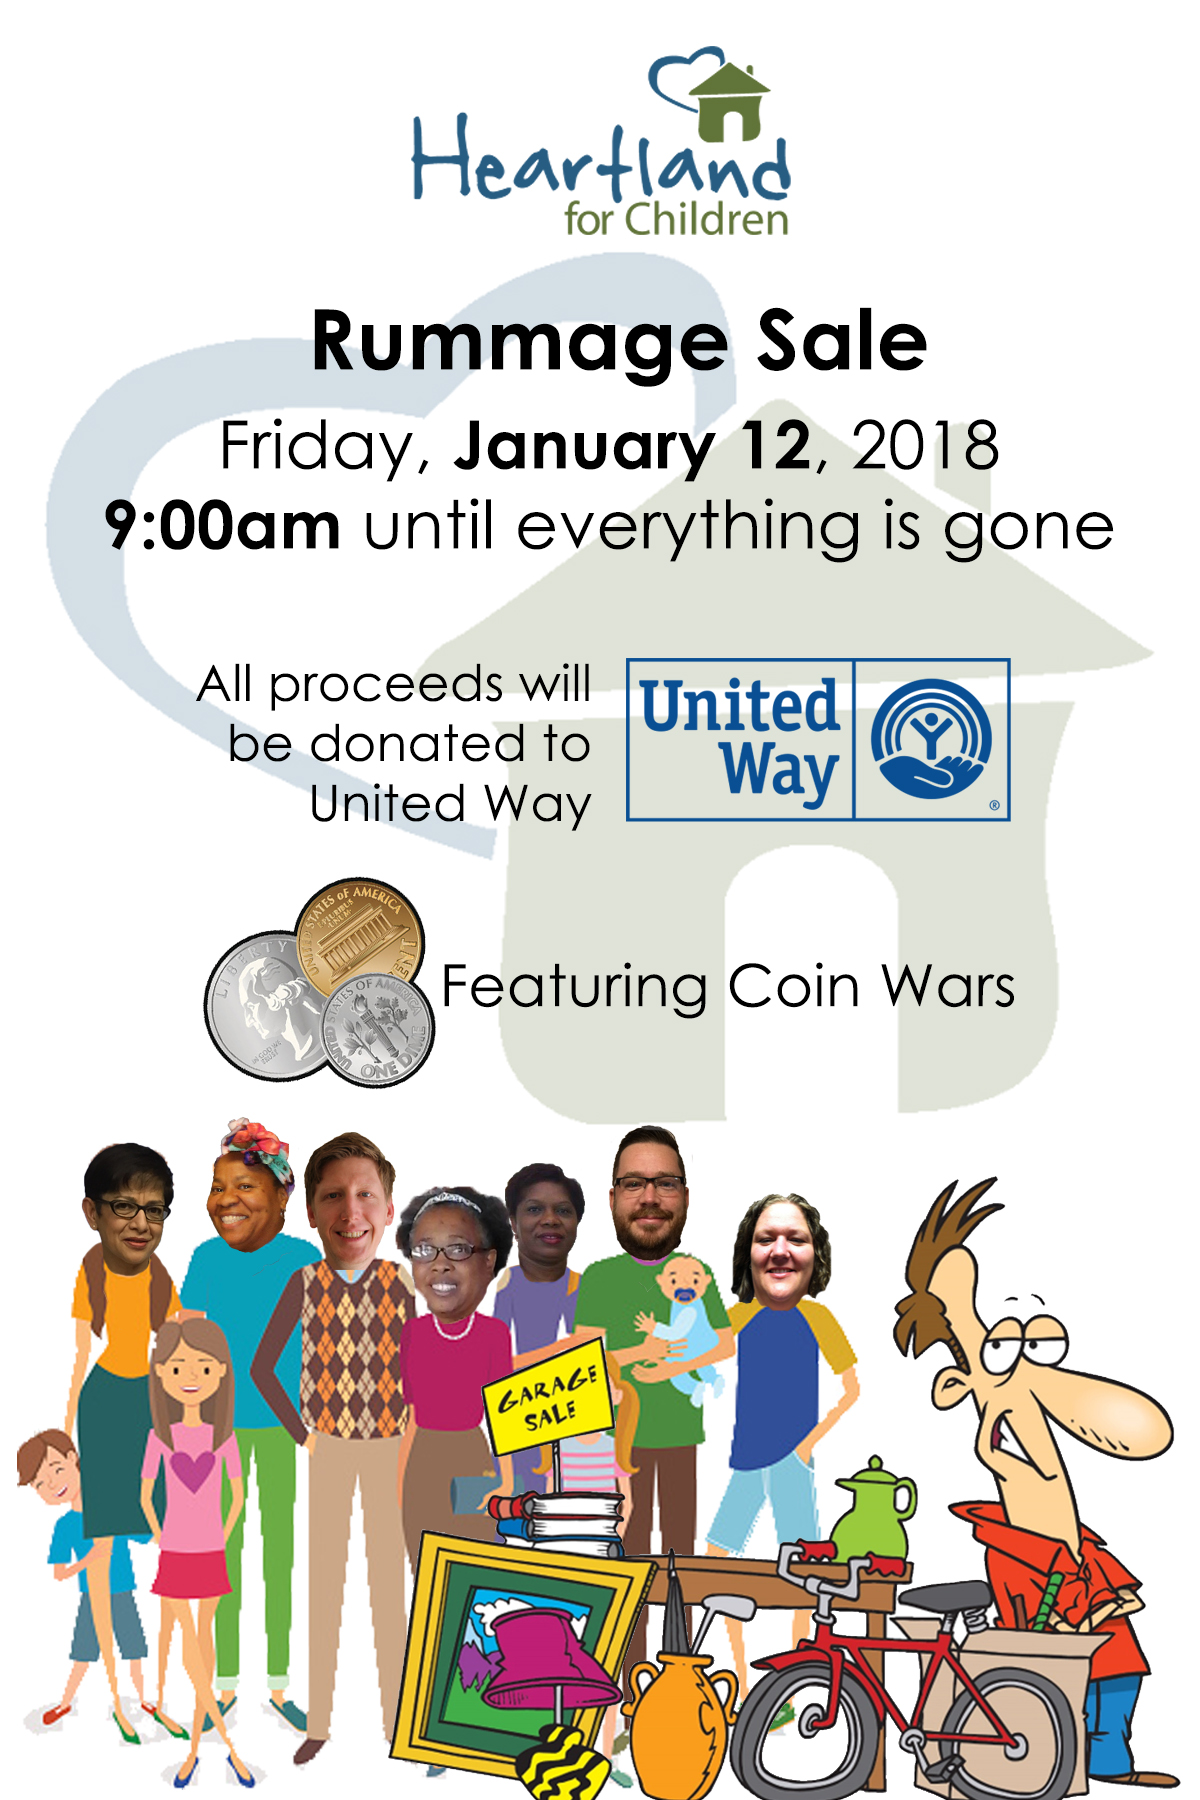 HFC Rummage Sale to Benefit United Way